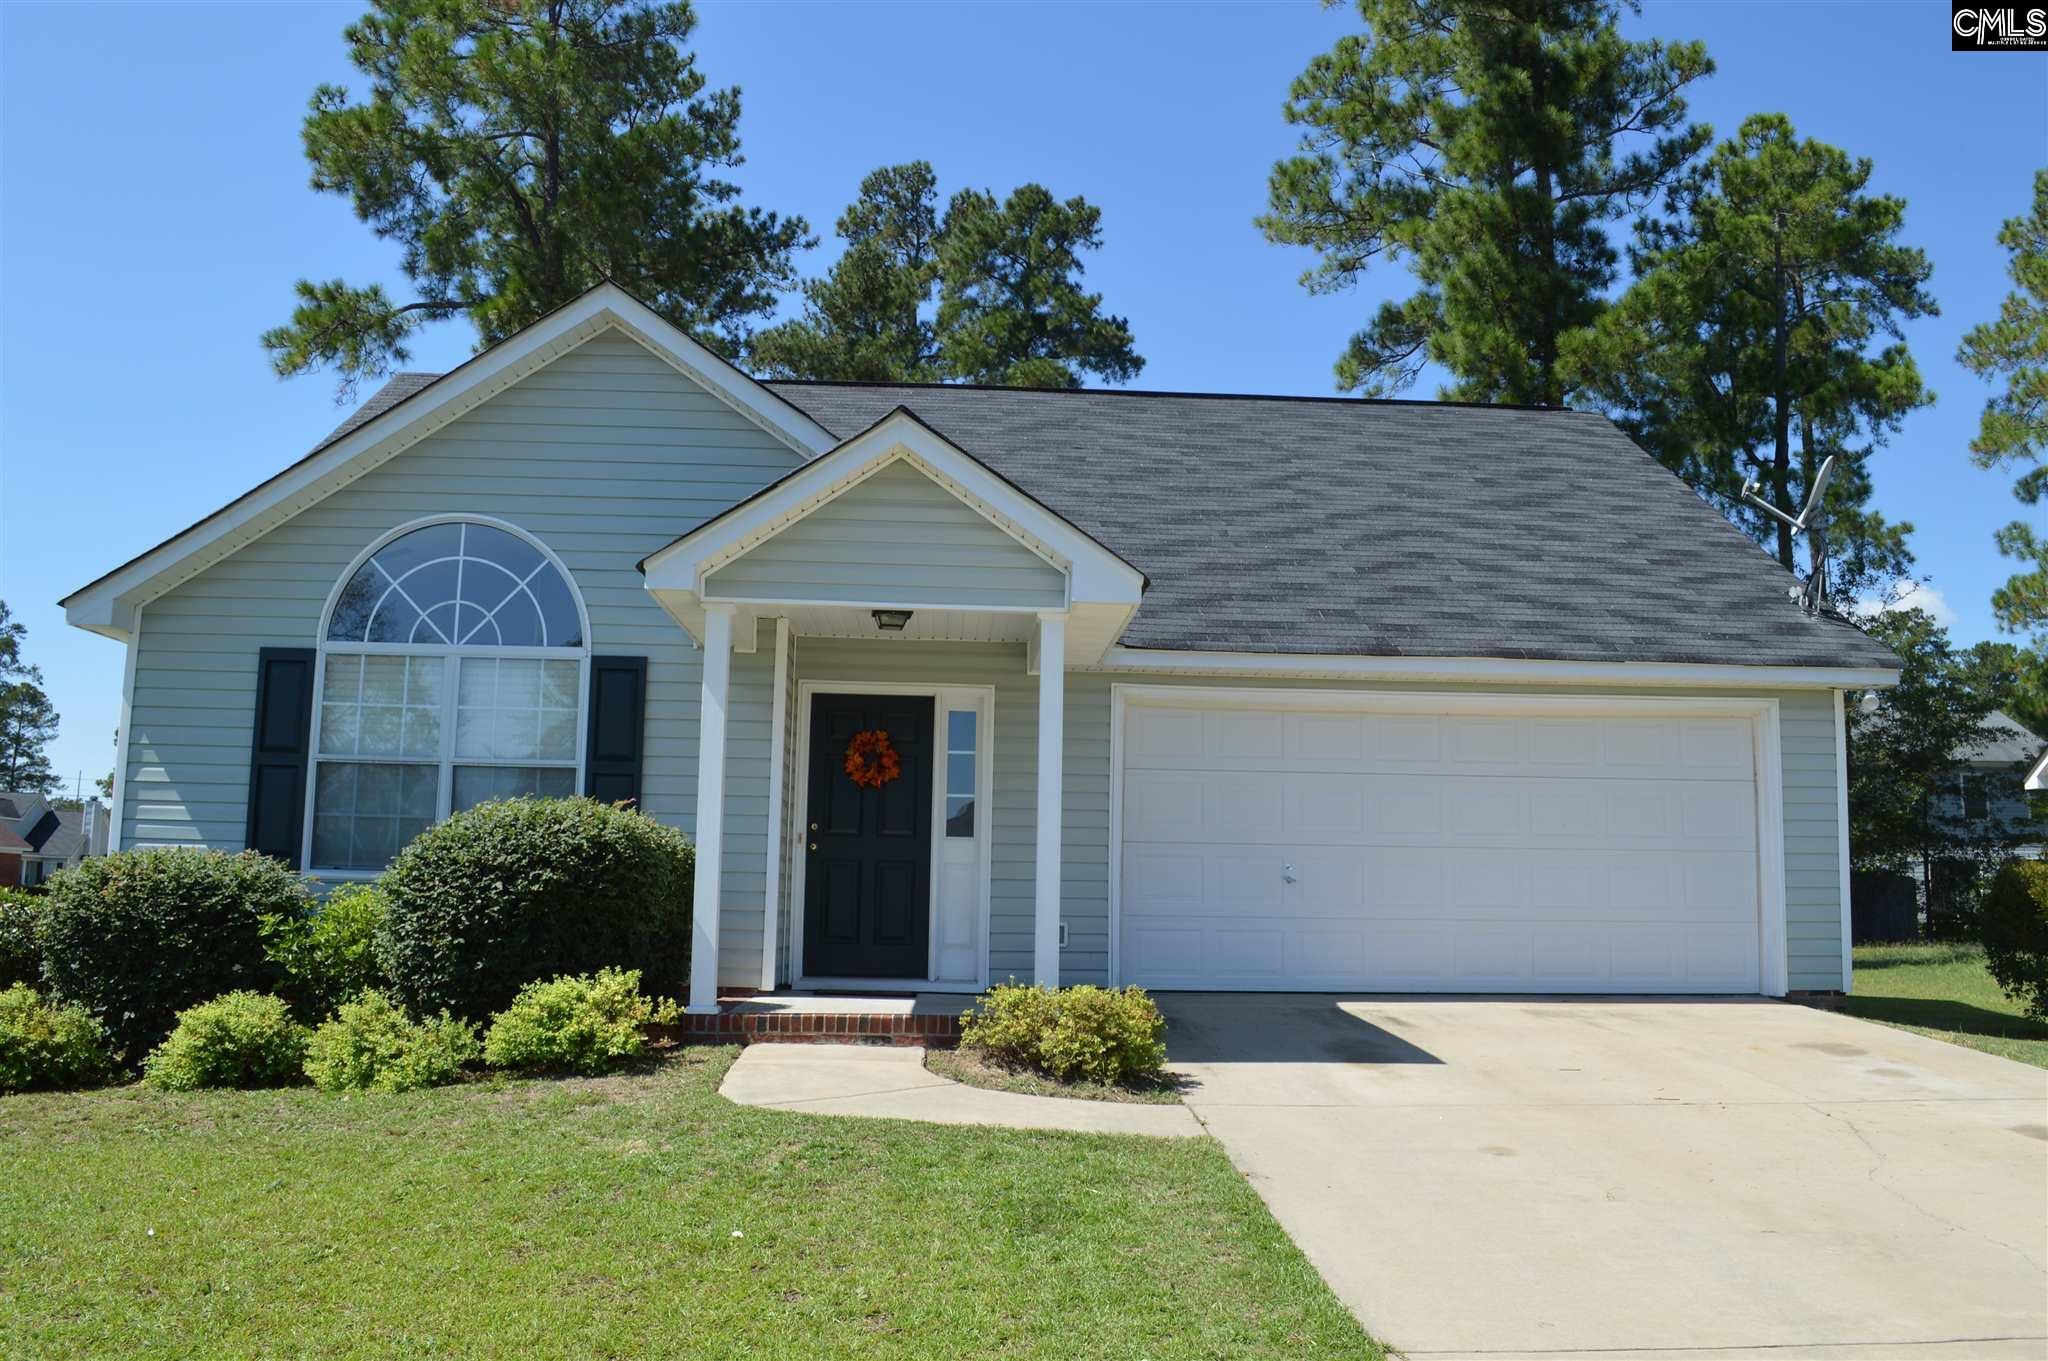 71 Sunset Maple Blythewood, SC 29016